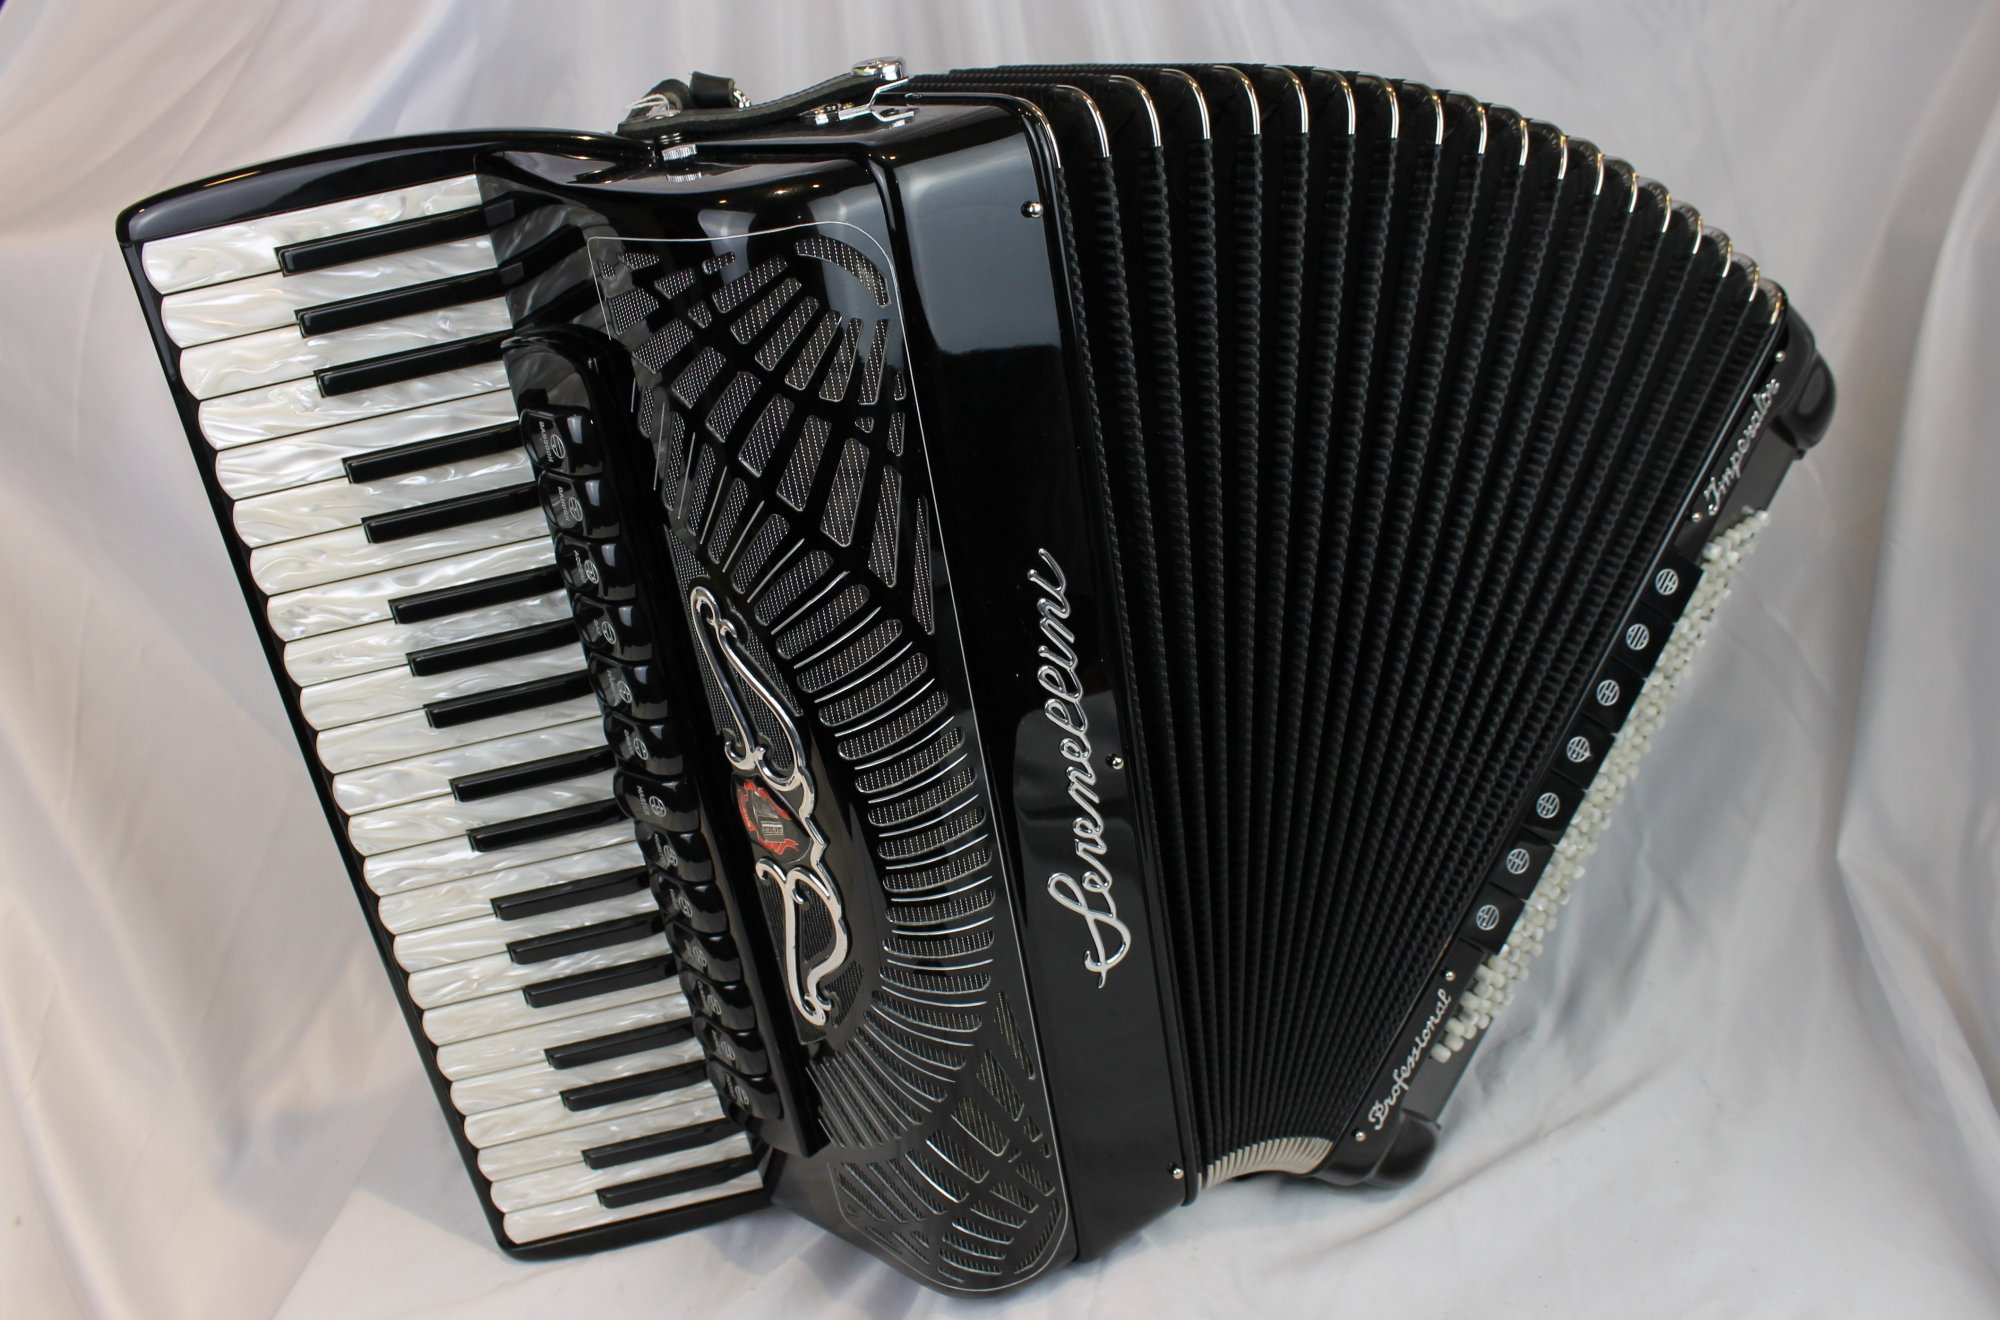 3905 - Certified Pre-Owned Black Serenellini Imperator IV Silver Piano Accordion LMMH 41 120